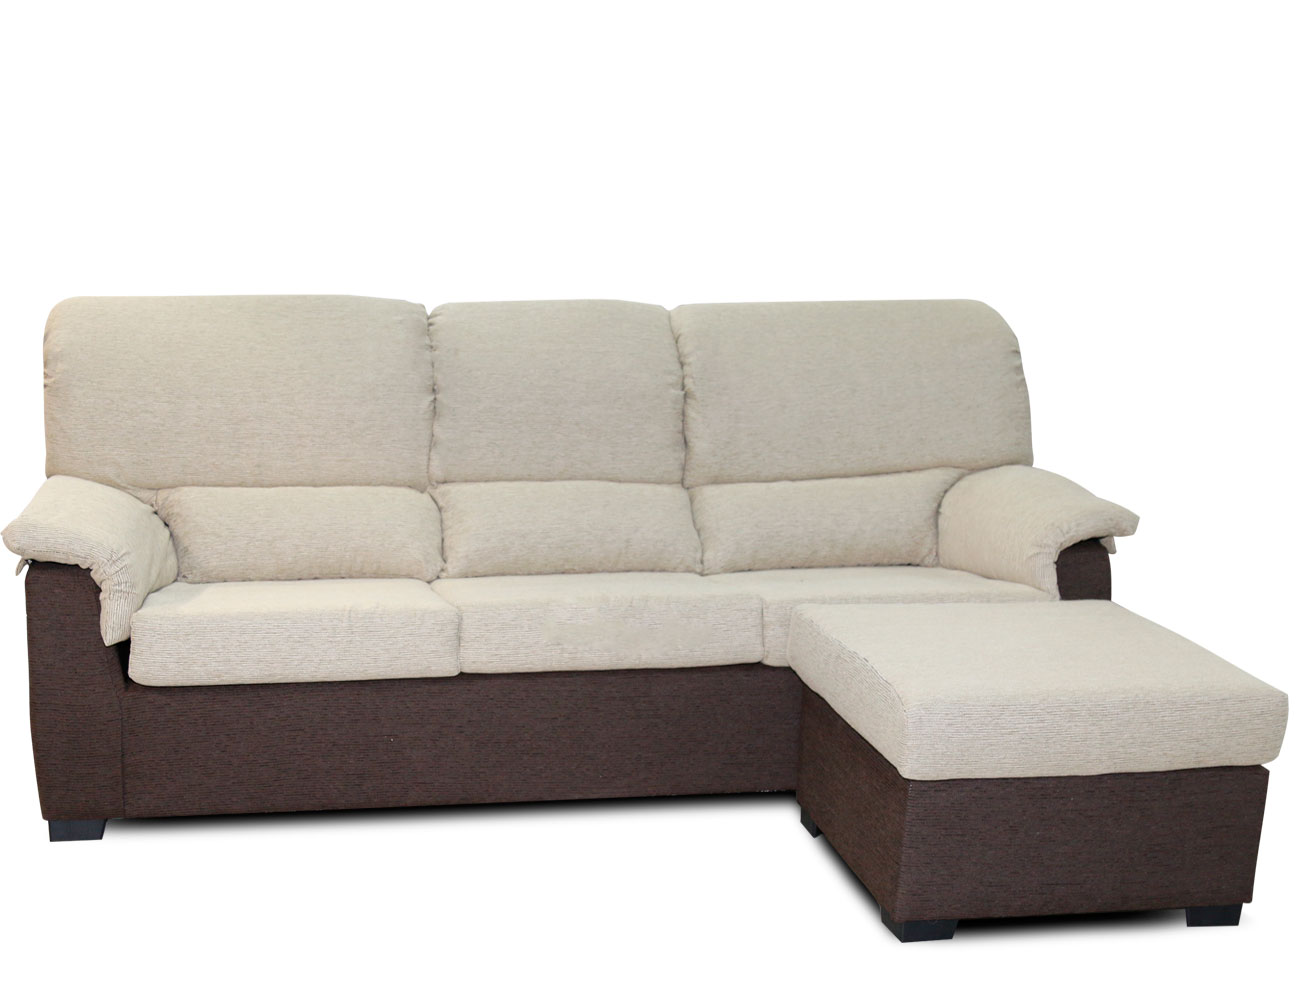 Sof chaiselongue barato con puf reversible 15285 for Sofas de rinconera baratos